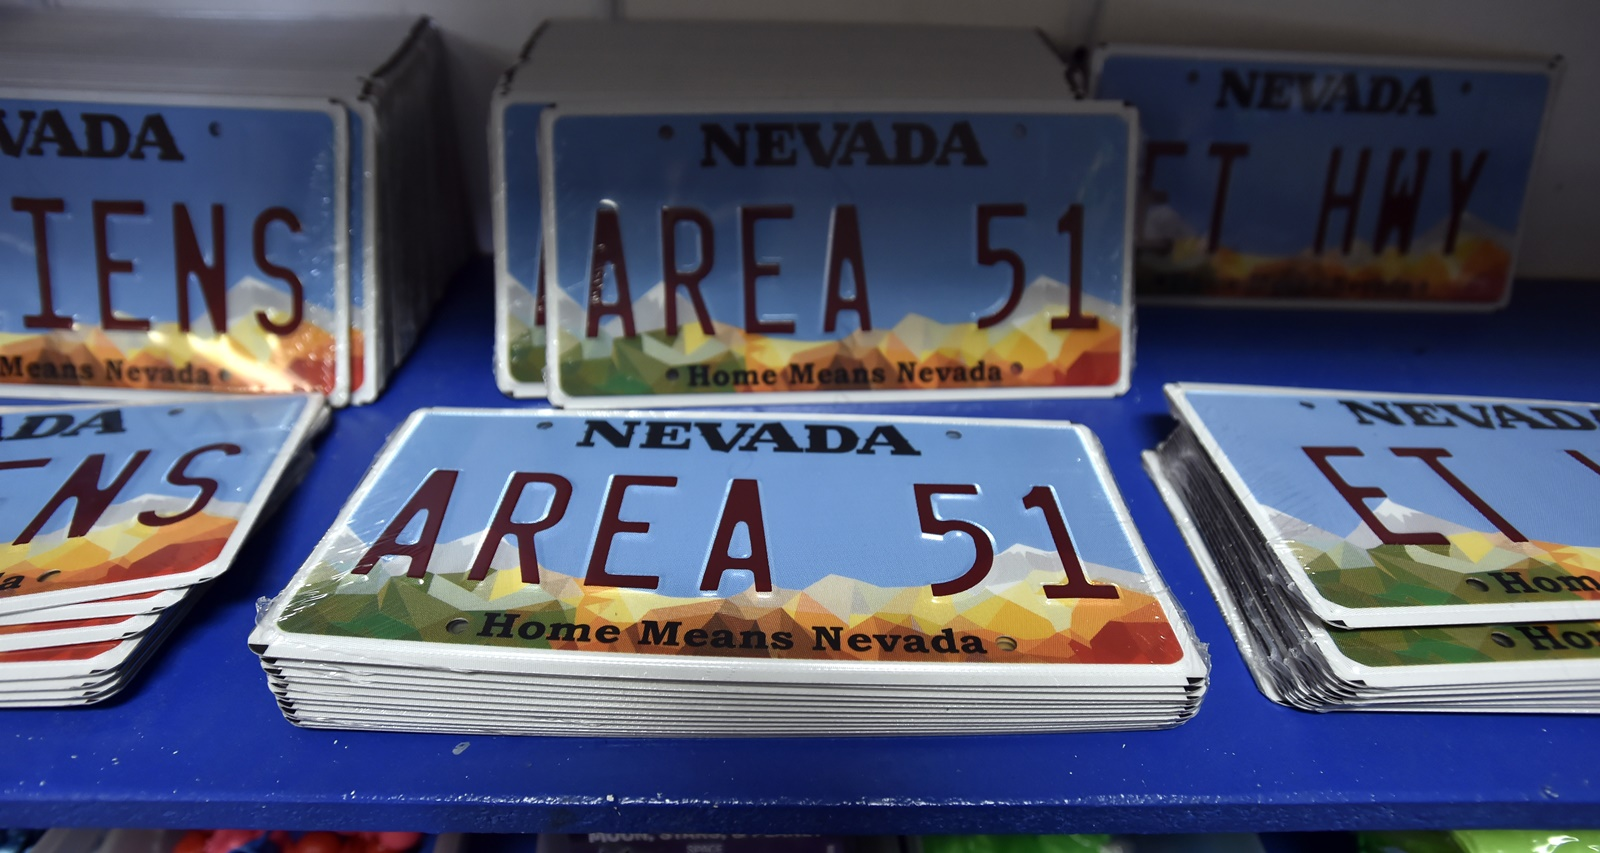 What Is The Progress On Storm Area 51? The Raid on Sept 20, 2019